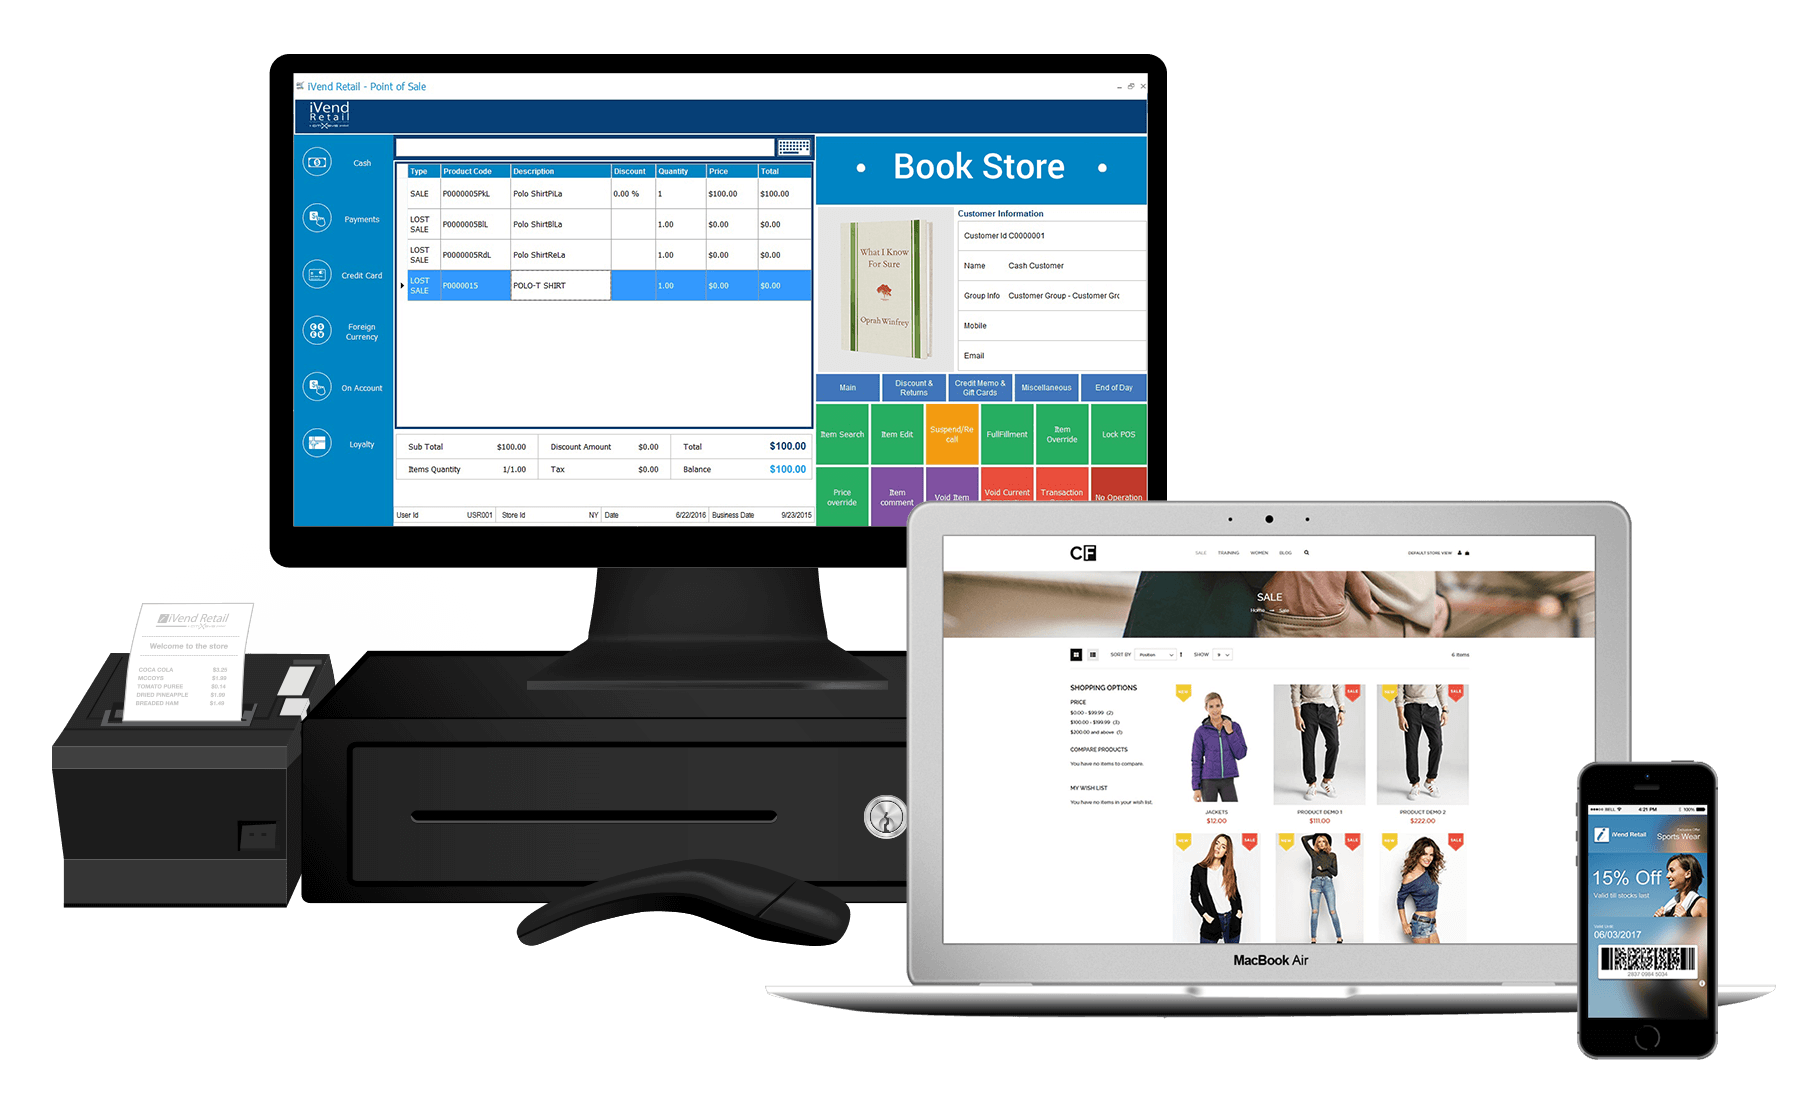 iVend-Sports-Vertical-POS